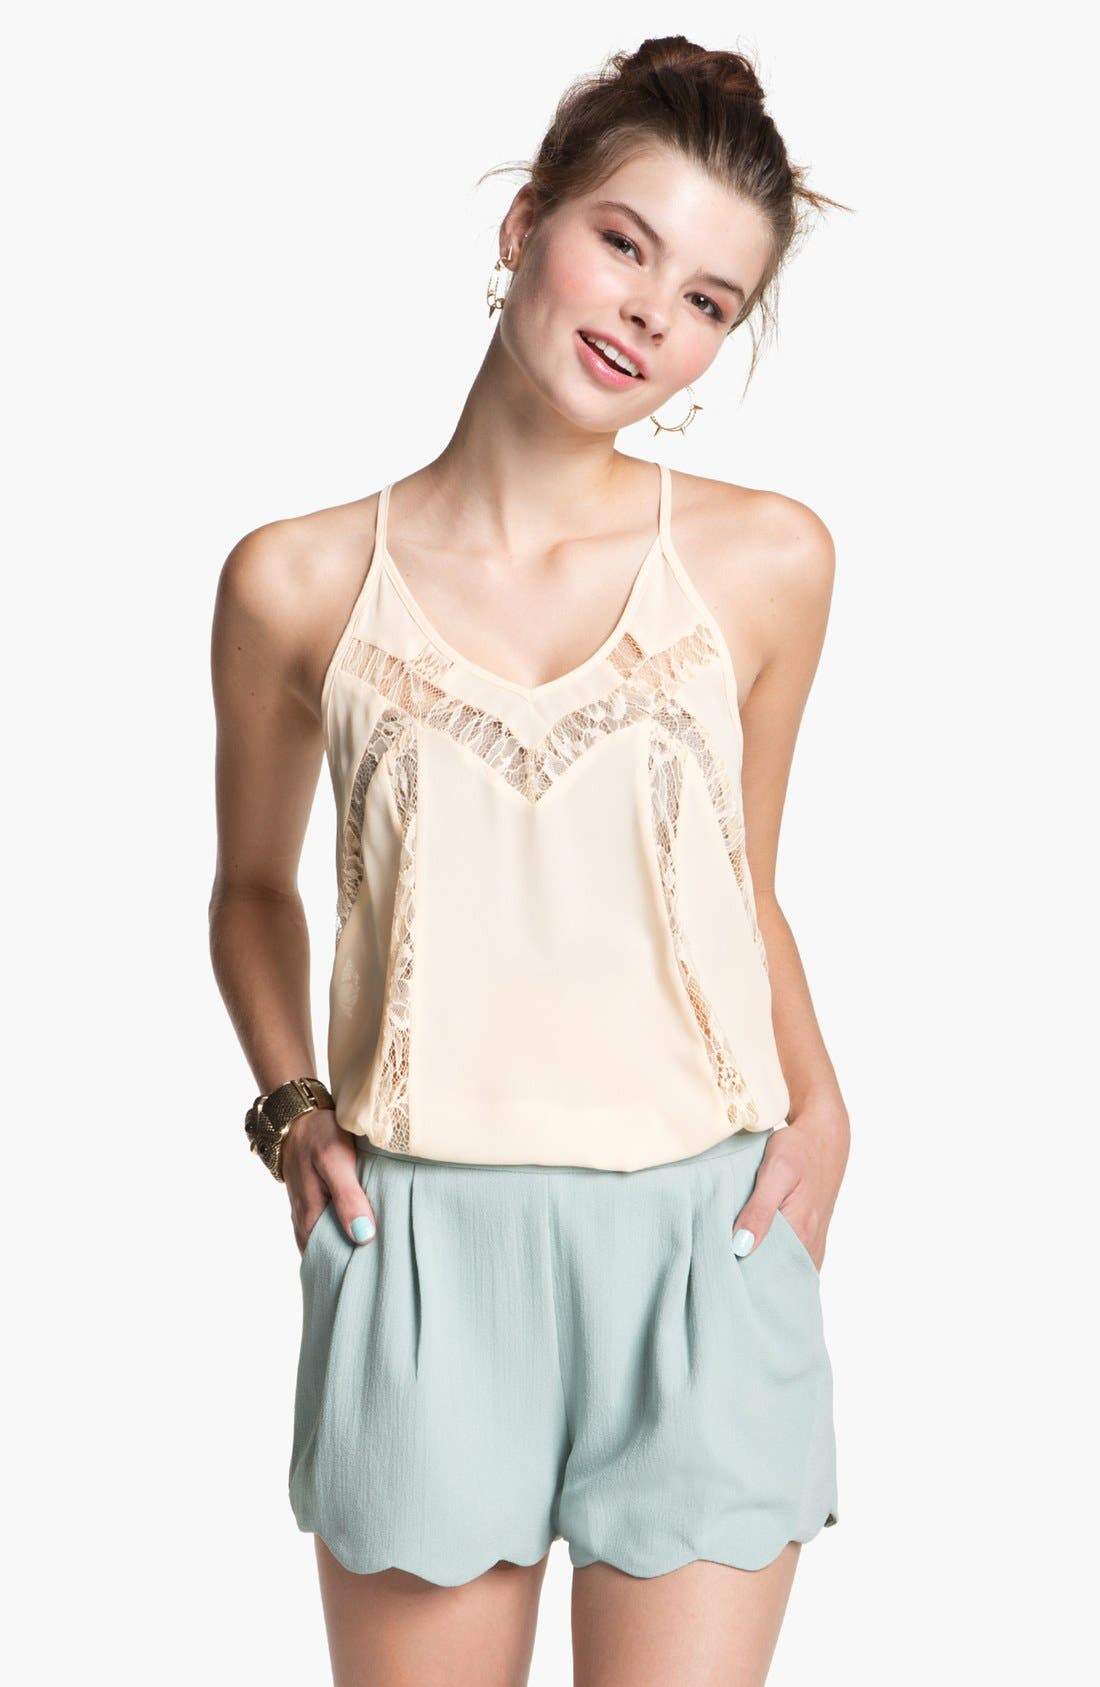 Alternate Image 1 Selected - Lace Inset Camisole